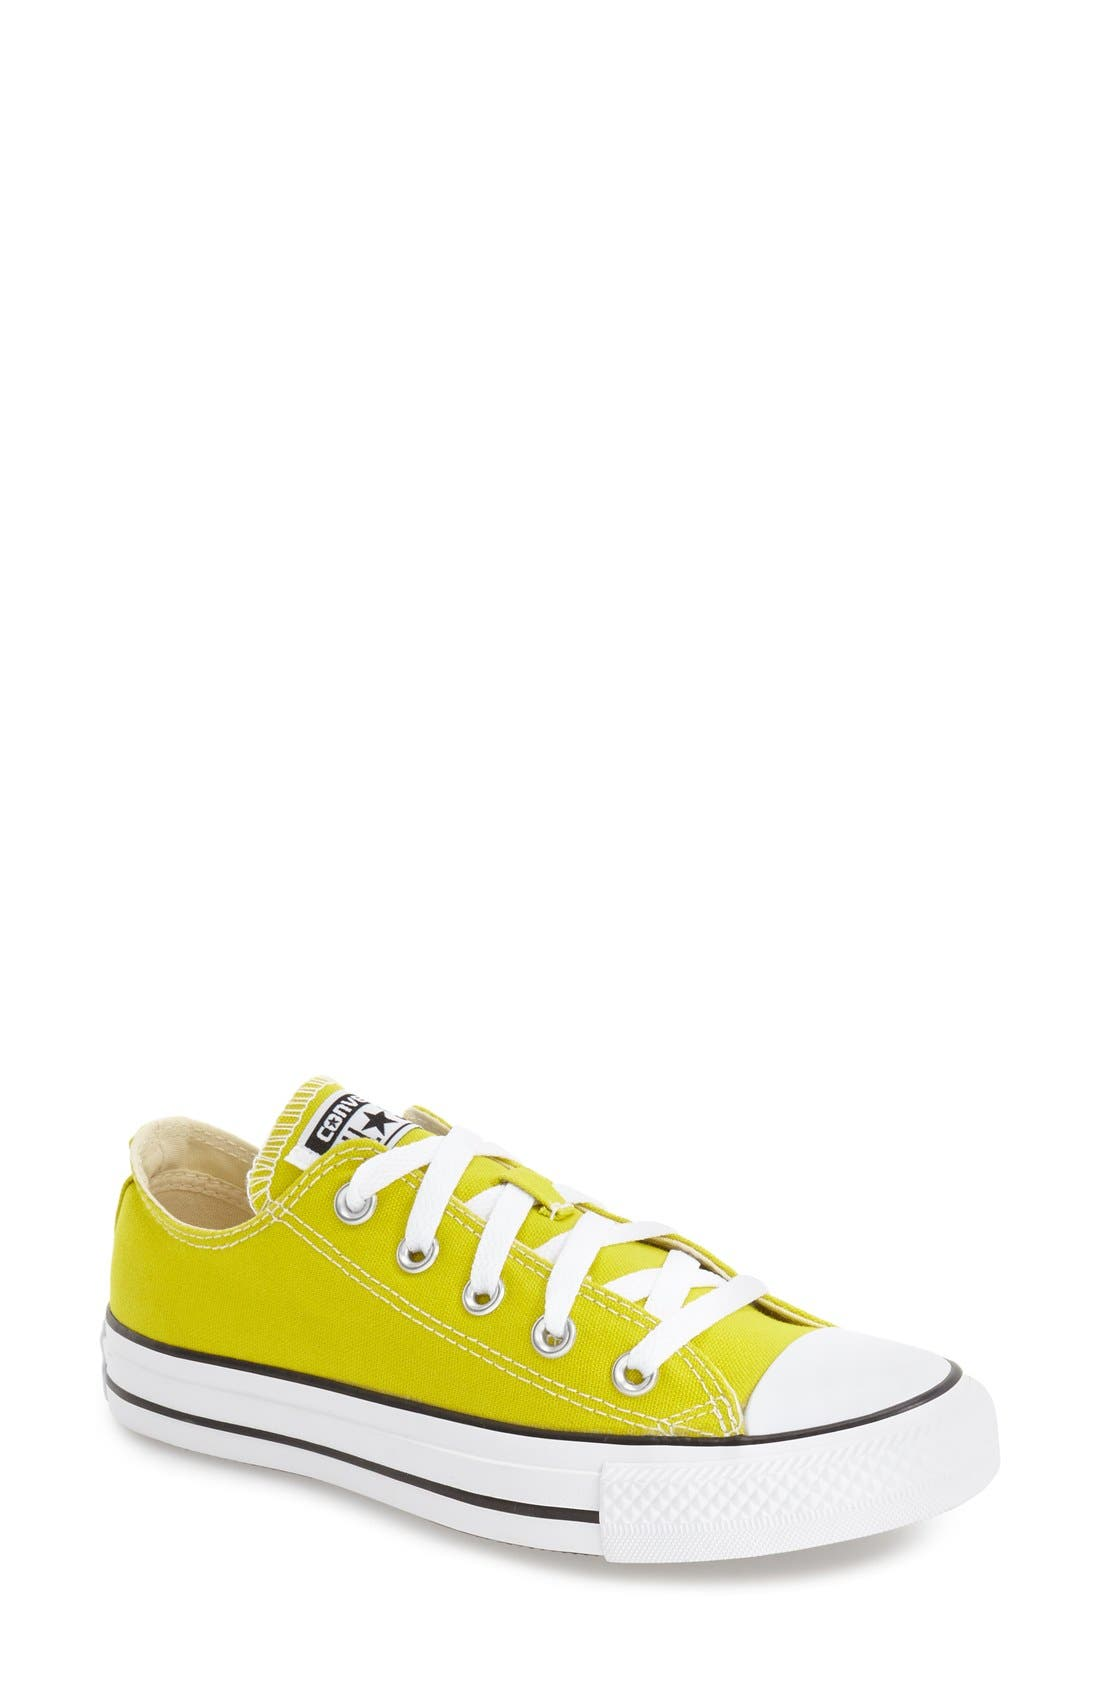 Main Image - Converse Chuck Taylor® All Star® Seasonal Ox Low Top Sneaker (Women)